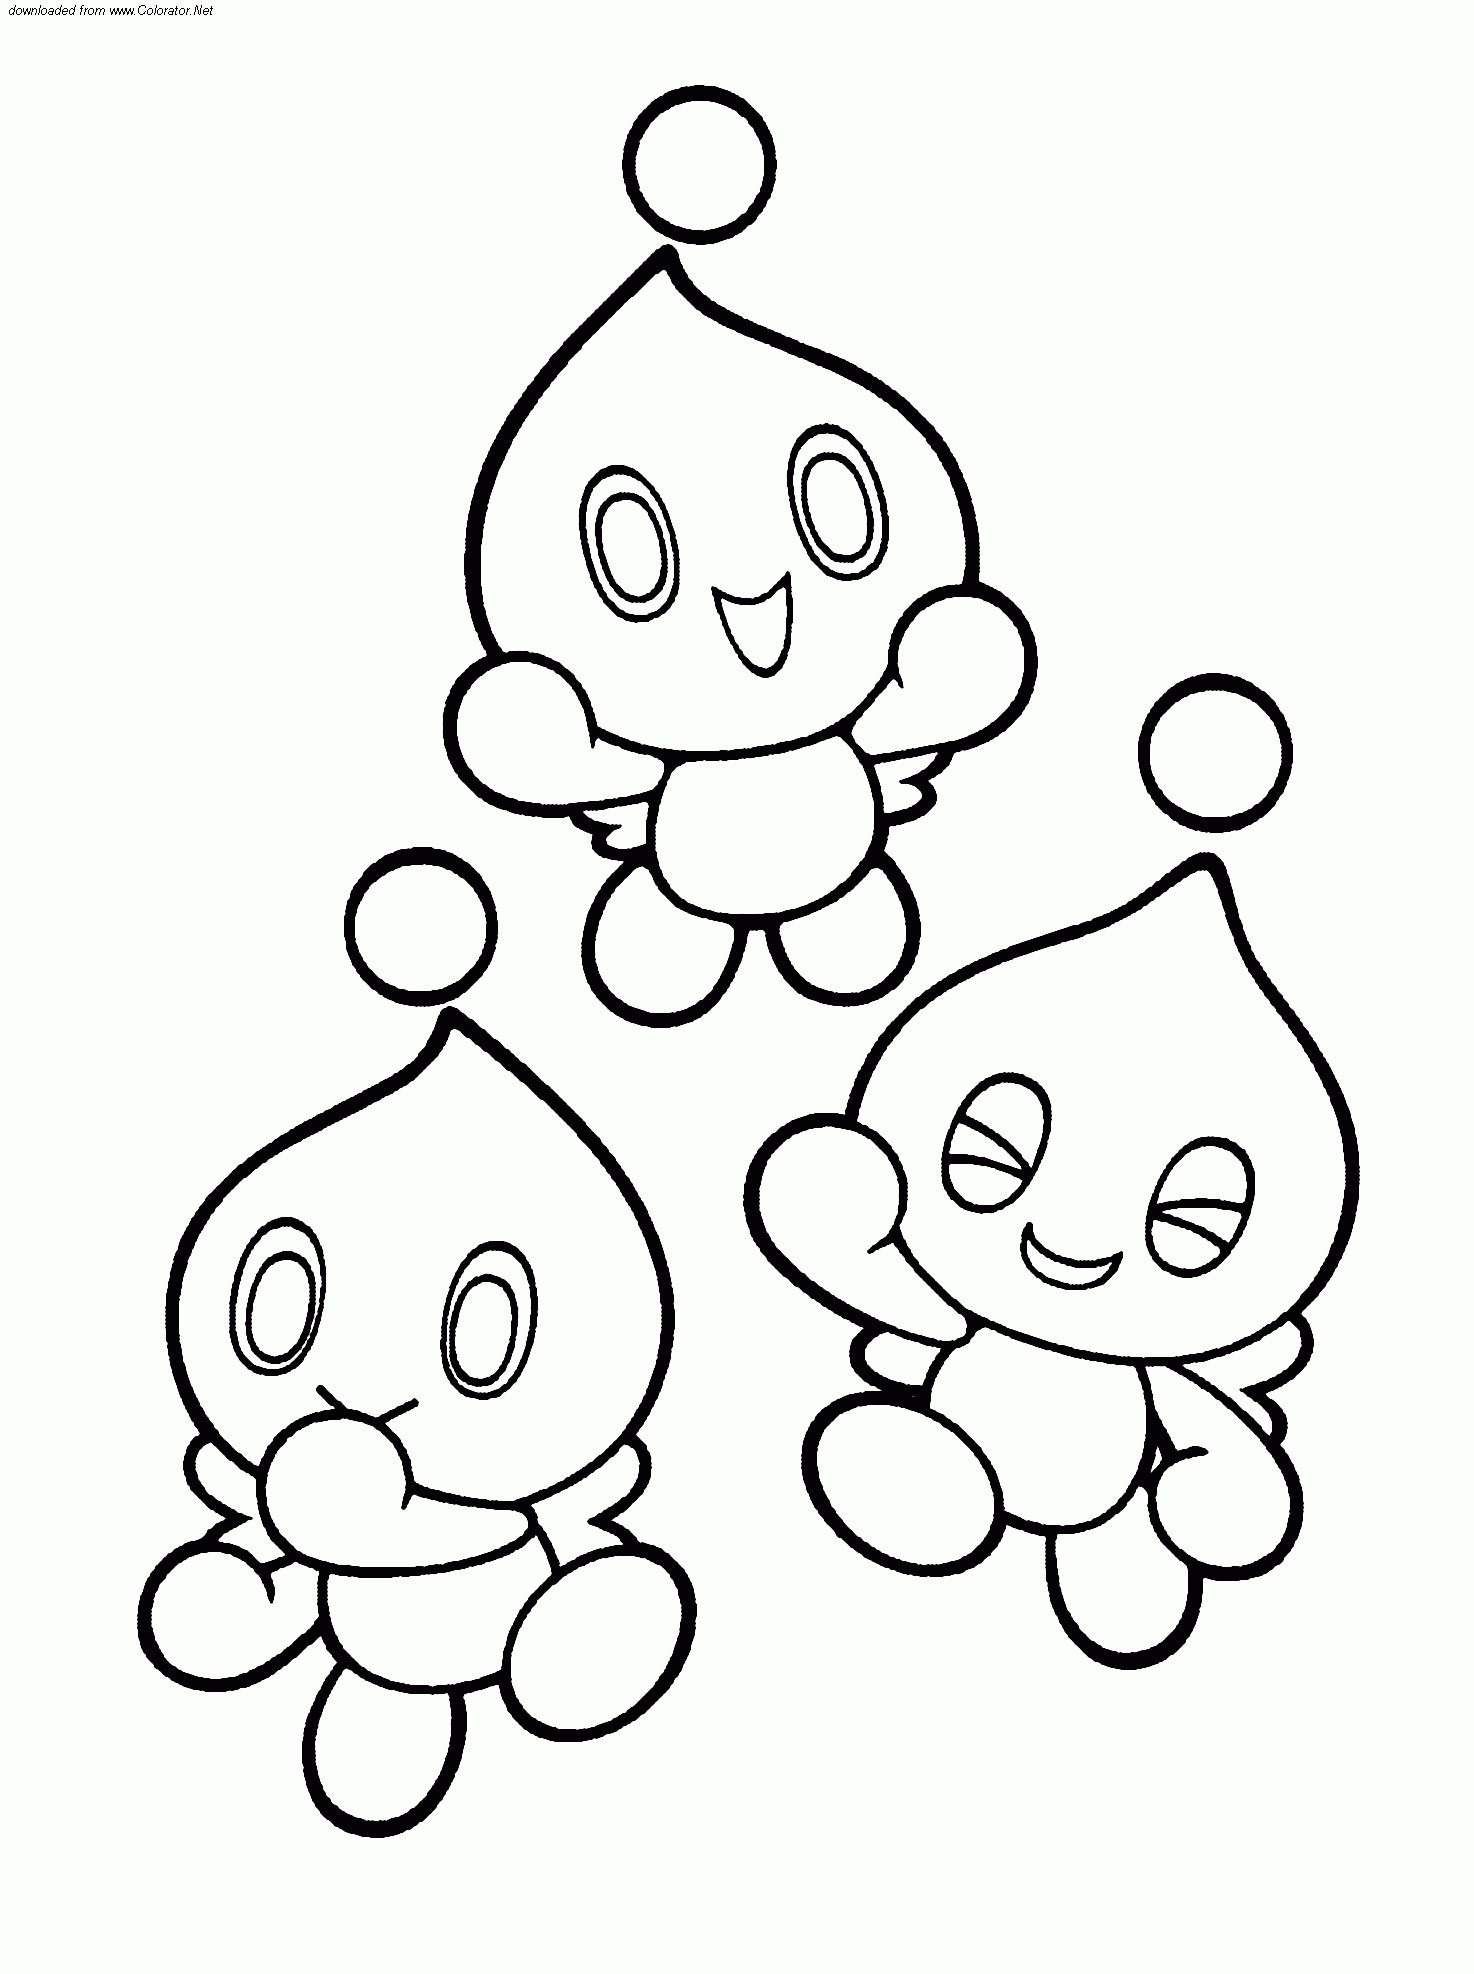 Sonic Chaos Coloring Pages Sonic Chaos Coloring Pages Sonic Chaos Emeralds Coloring Pages Sonic The Coloring Pages Coloring Pages For Kids Coloring For Kids